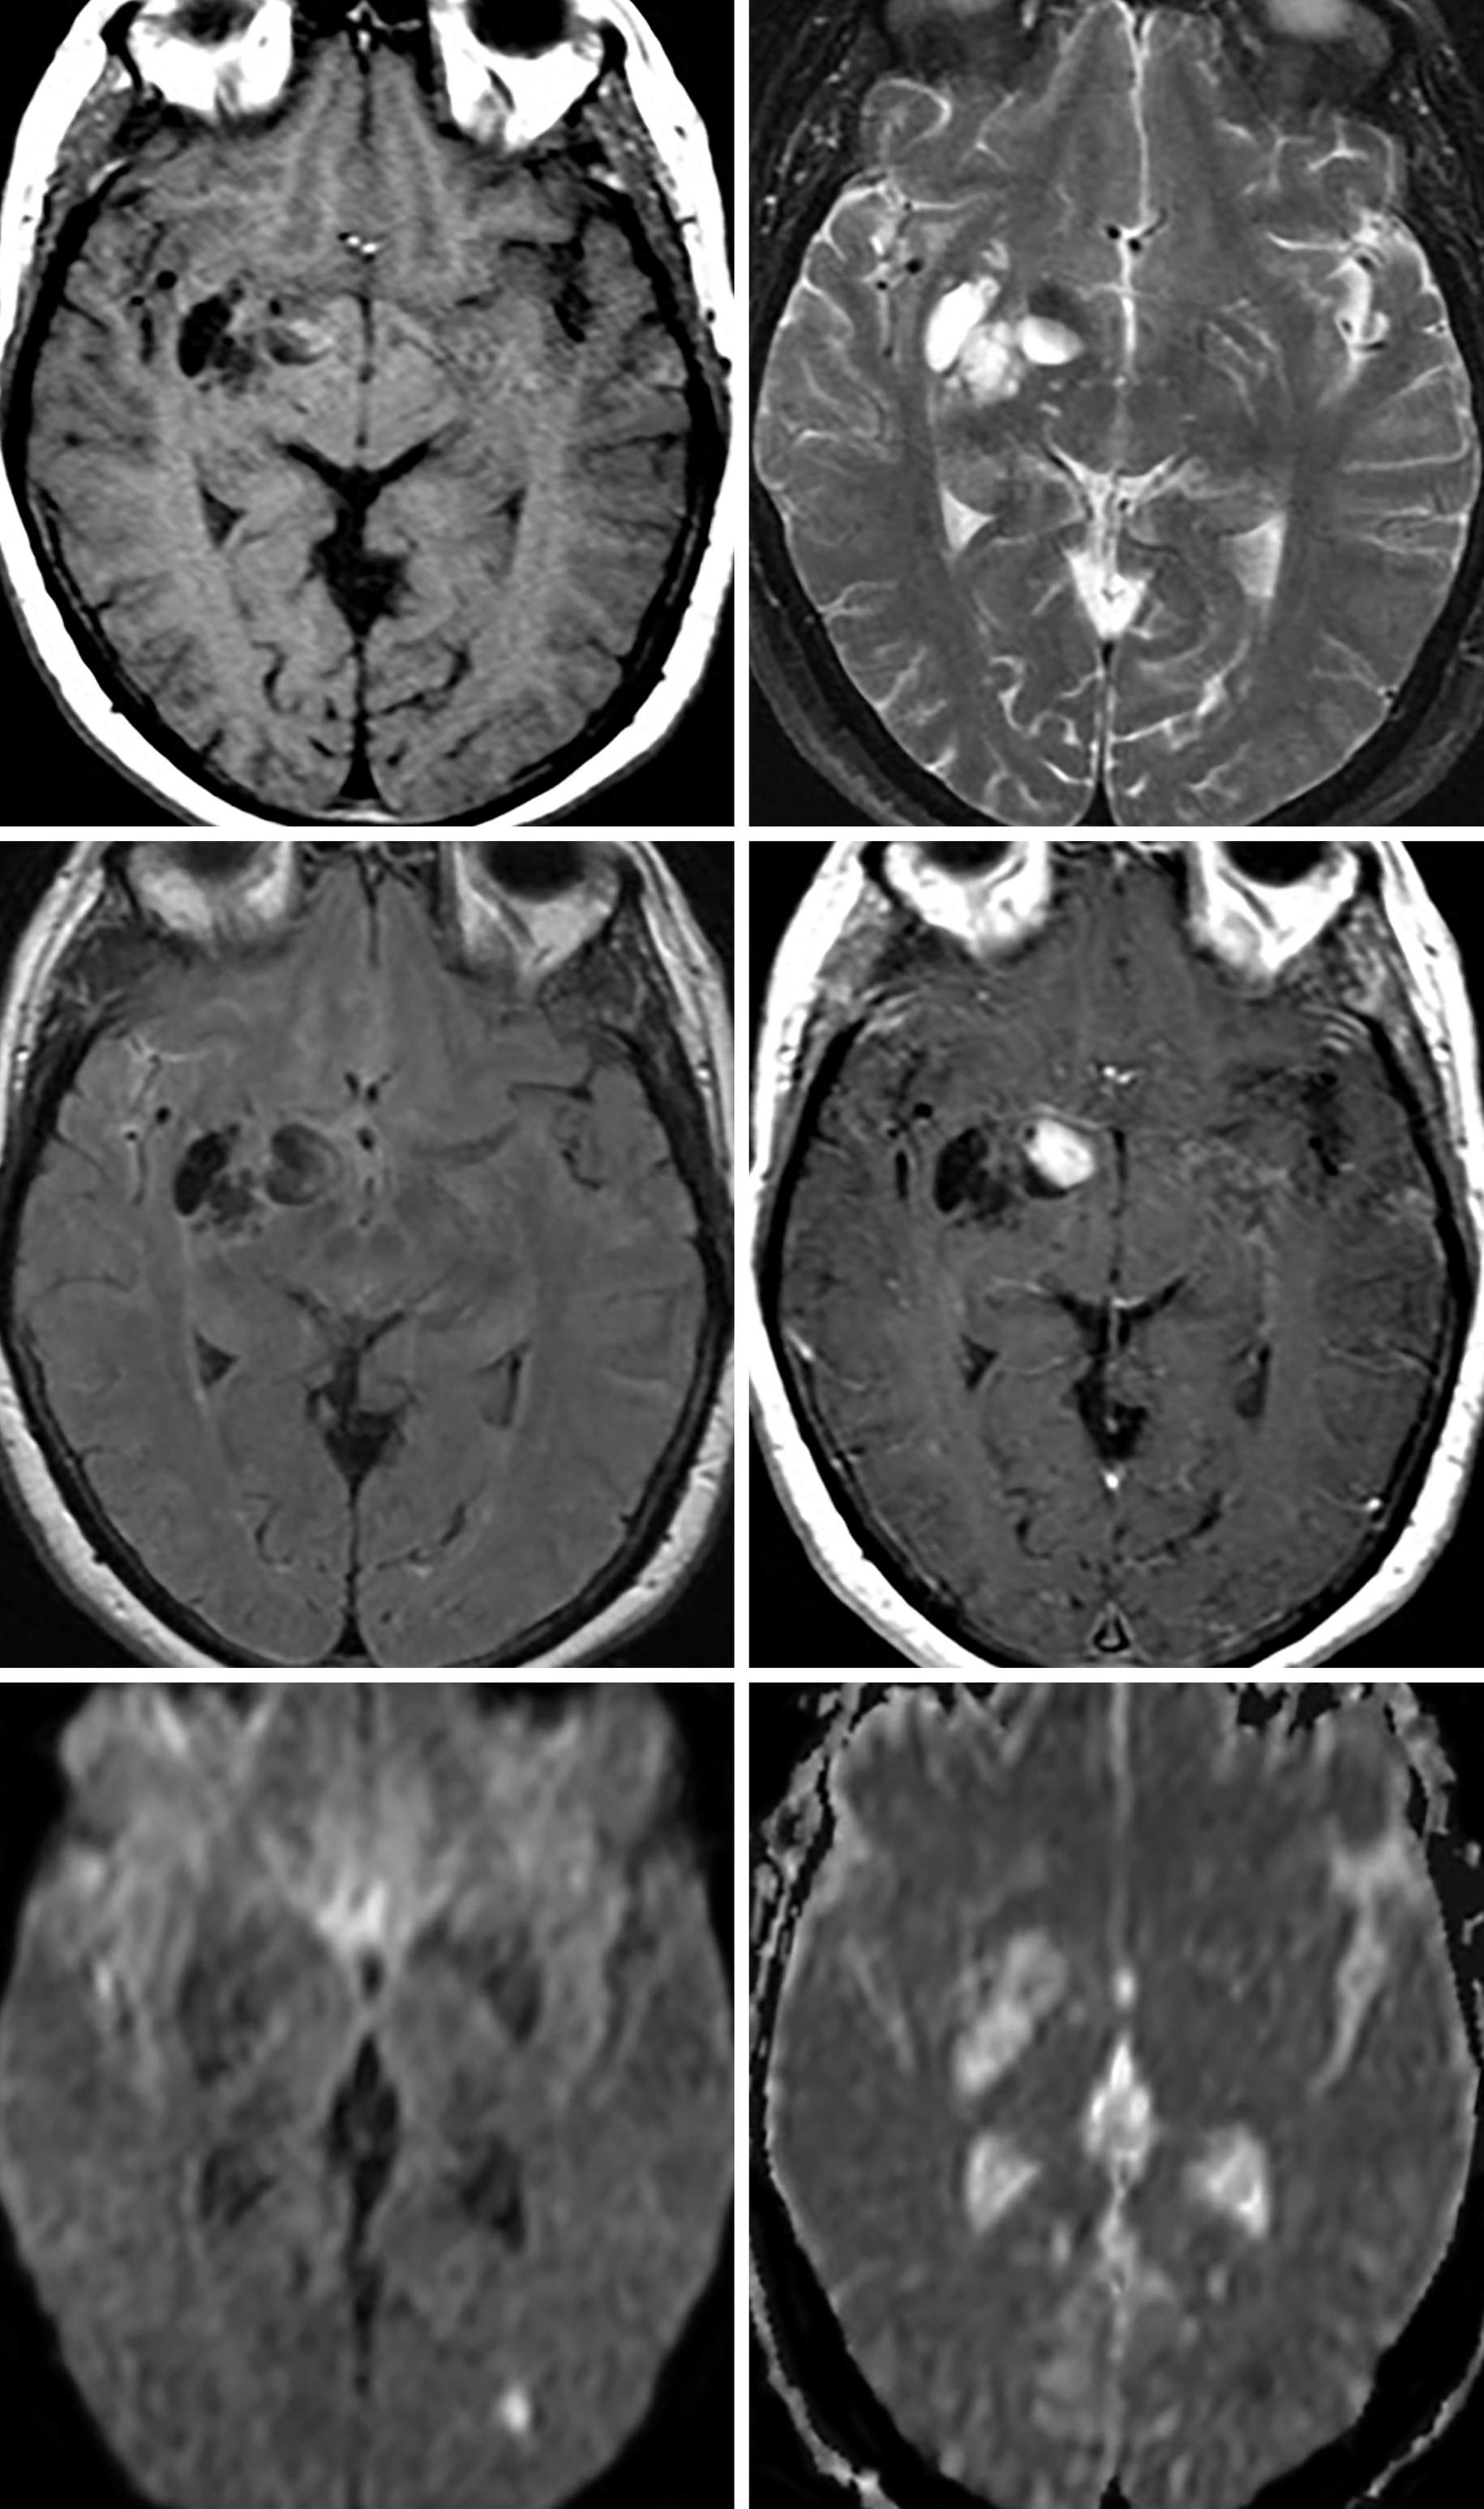 Figure 1: In this HIV-positive patient, there is a cluster of dilated perivascular spaces and pseudocysts with signal isointense to CSF on T1-weighted (top left), T2-weighted (top right), and FLAIR (middle left) imaging. (Middle Right) The medial-most lesion demonstrated more heterogeneous signal with a solid enhancing component along the medial margin. (Bottom Left and Bottom Right) The majority of these lesions in the basal ganglia demonstrate normal or increased diffusivity on DWI/ADC, a common finding in many atypical infections.